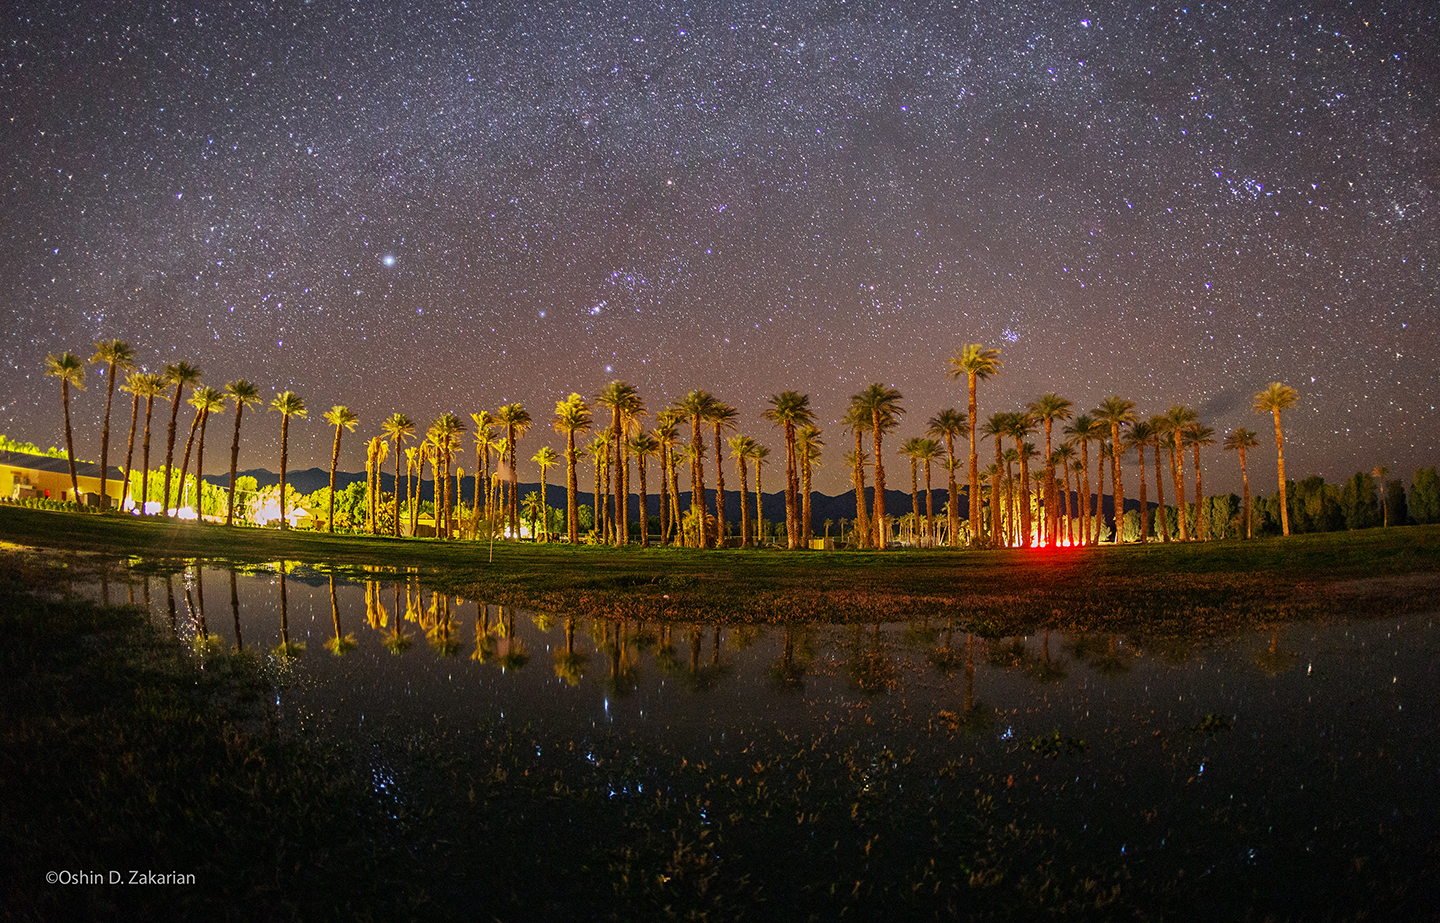 Stars reflect in the water while palm trees are illuminated with red and white light.